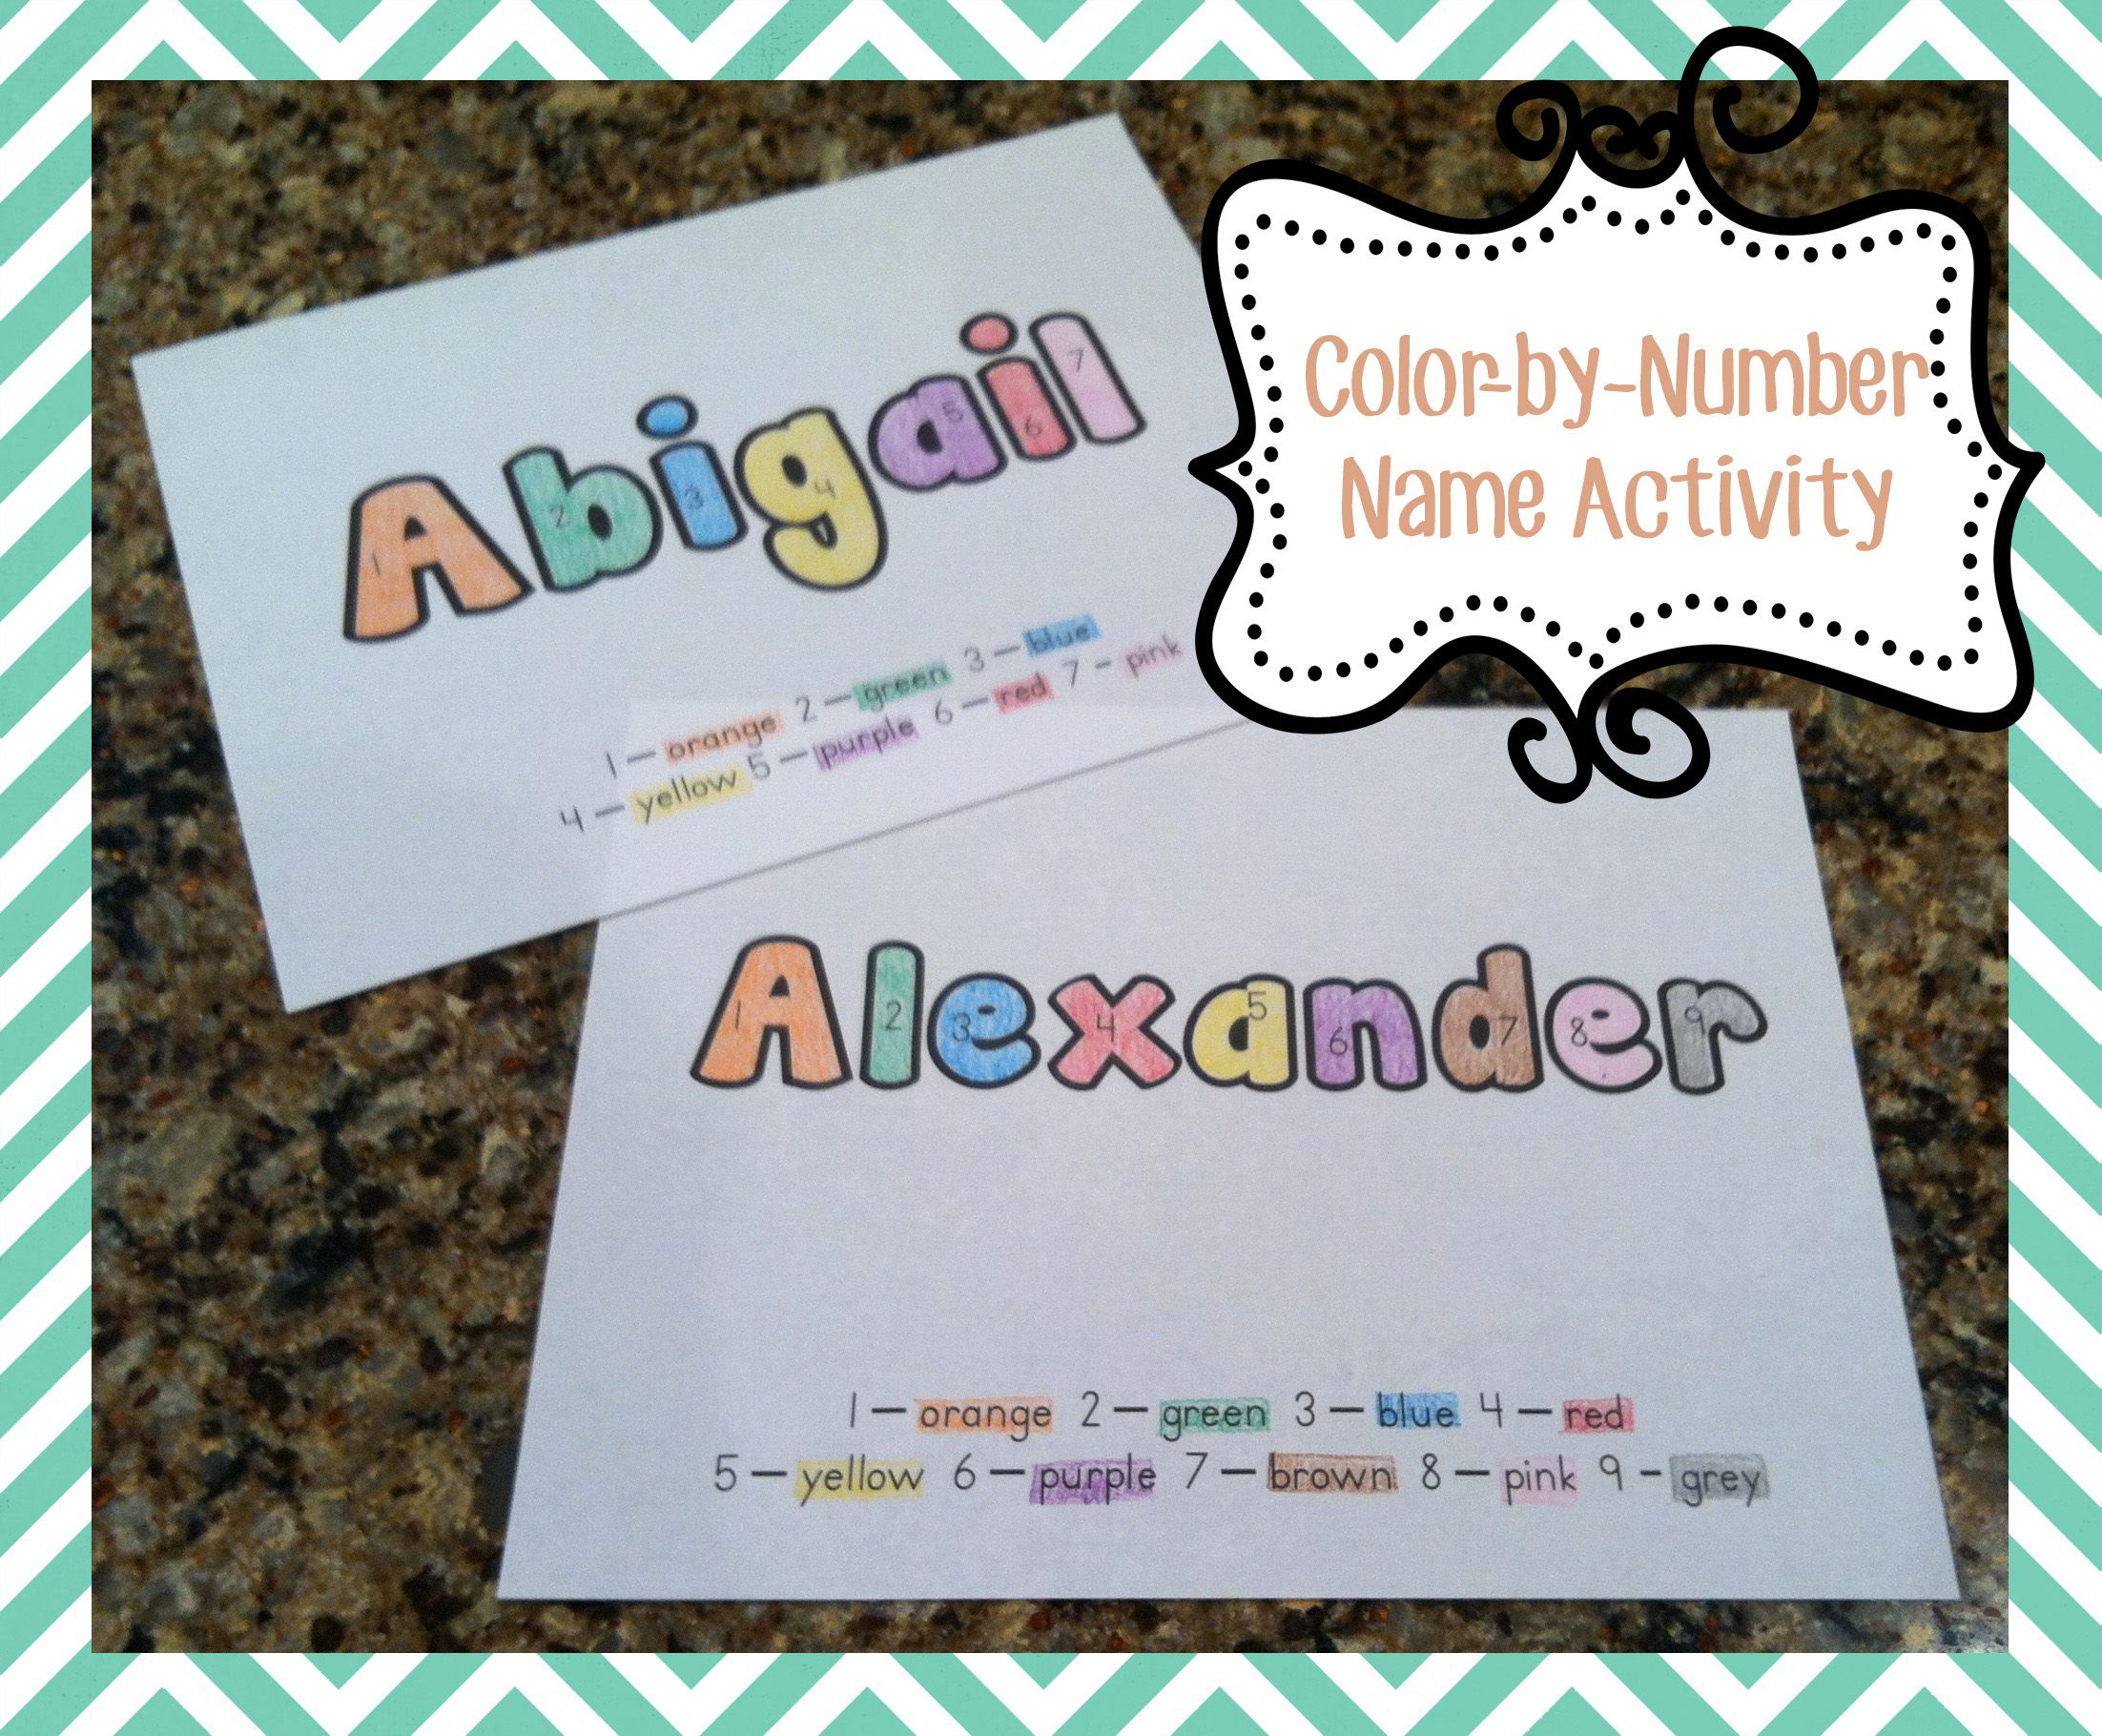 Color-by-Number Name Worksheets